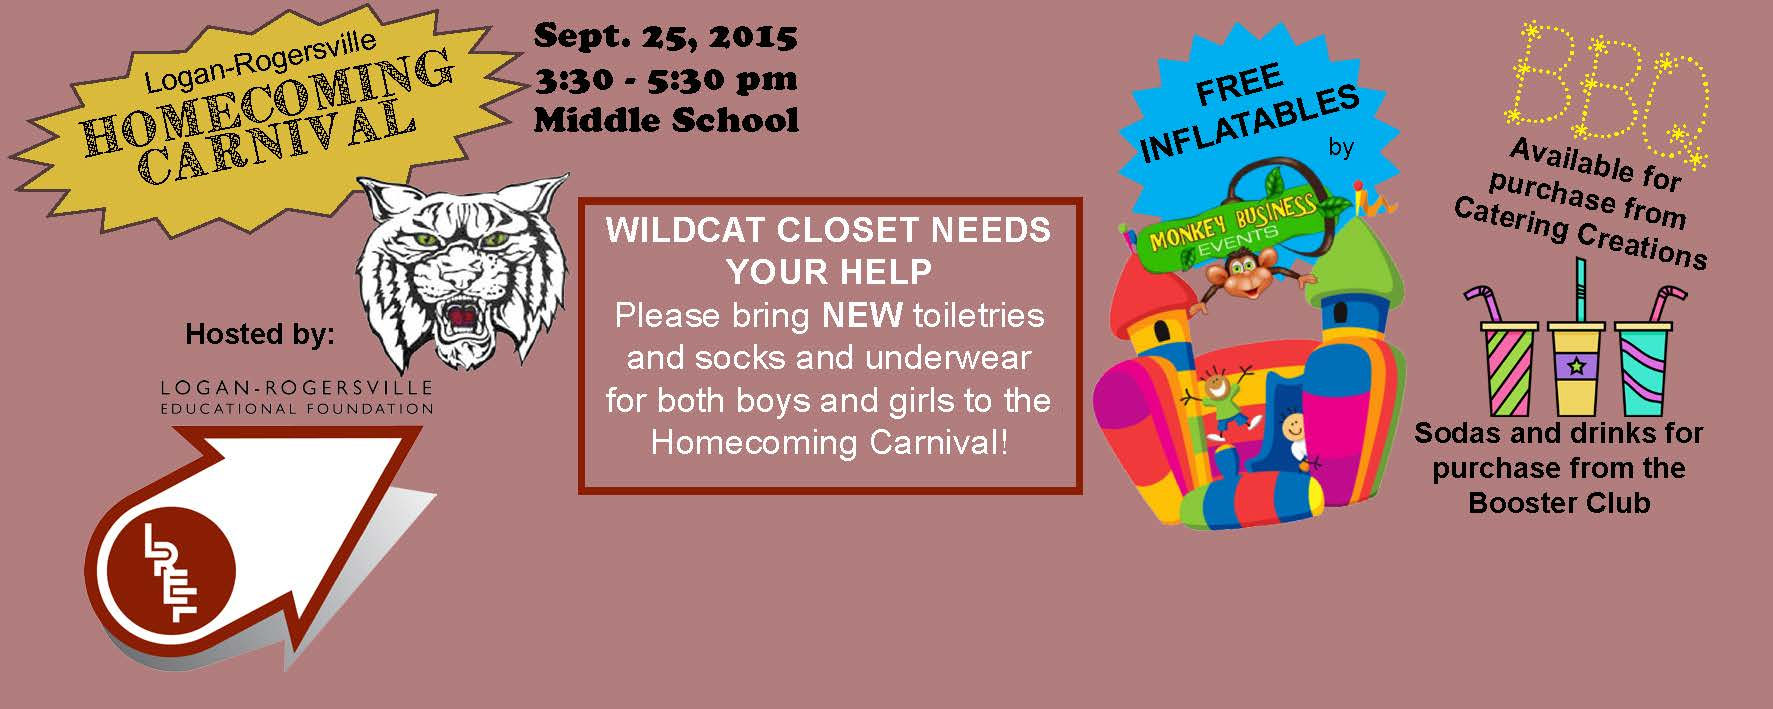 Homecoming Carnival - September 25, 2015